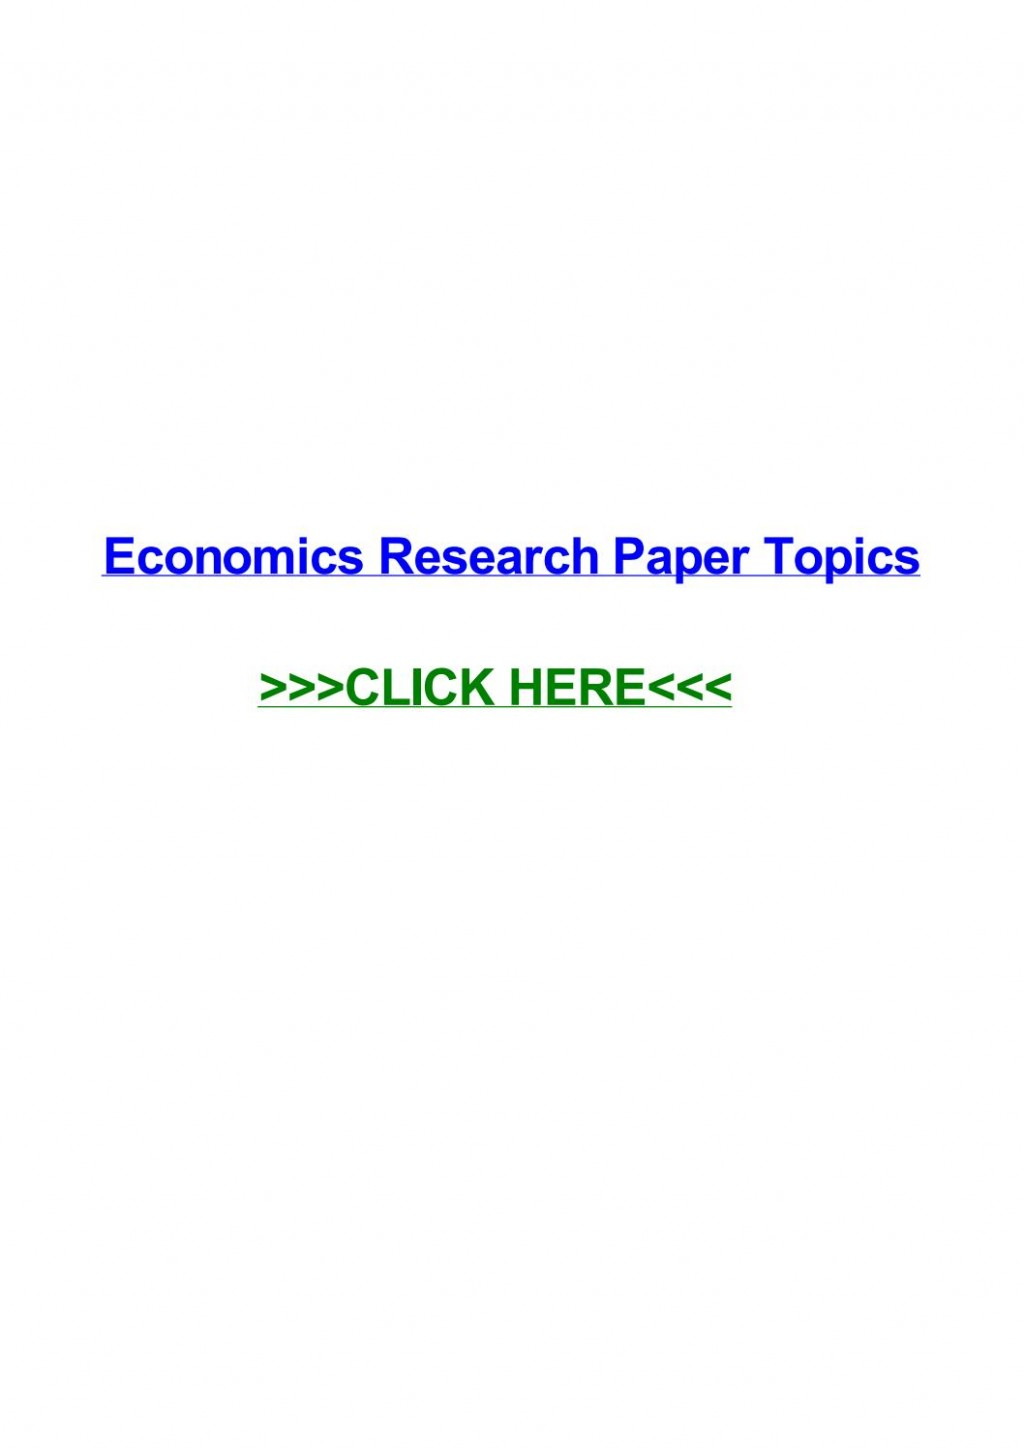 003 Research Paper Economics Topics Page 1 Remarkable In Philippines India International Large